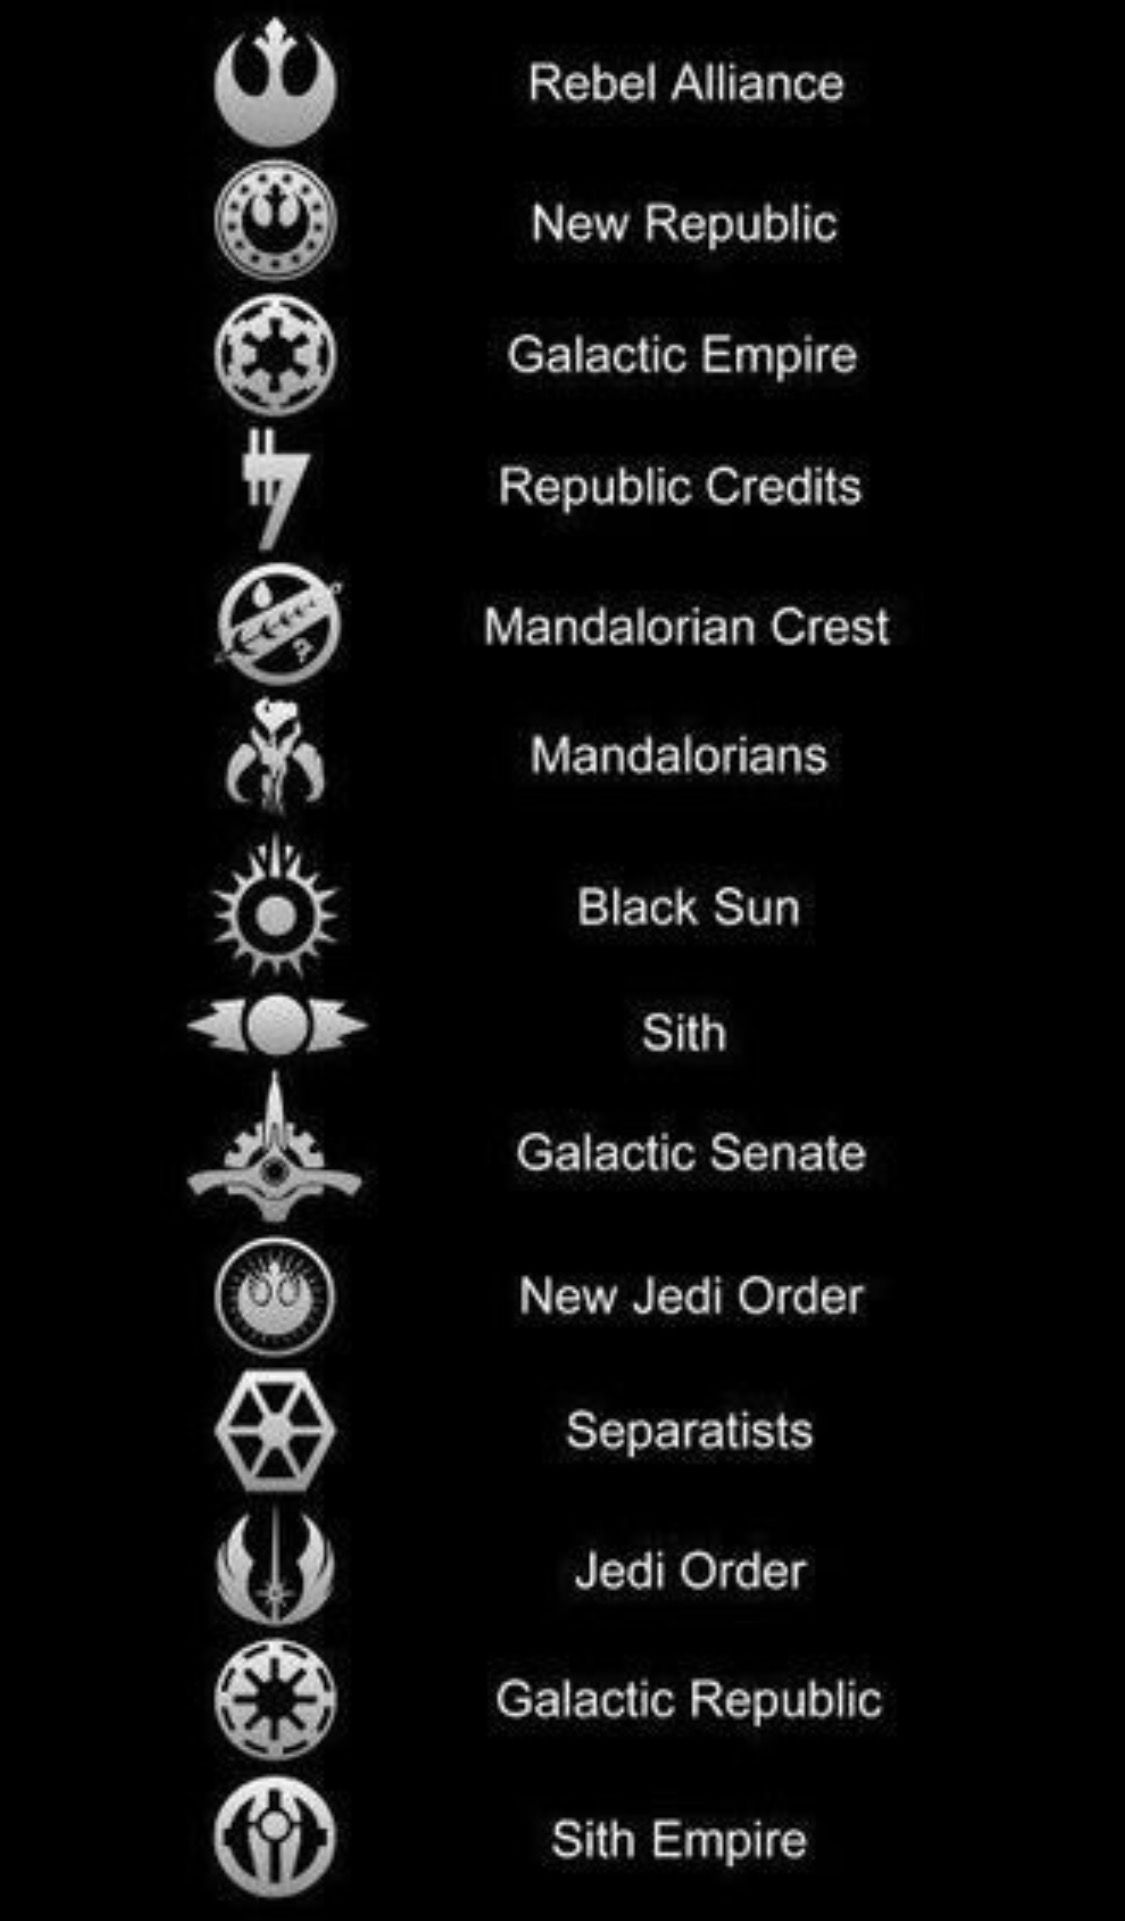 Pin By Erin Cooper On Star Wars Pinterest Stars And Inkstarhalotattoomachinediagrams Art Love Icons Quiz